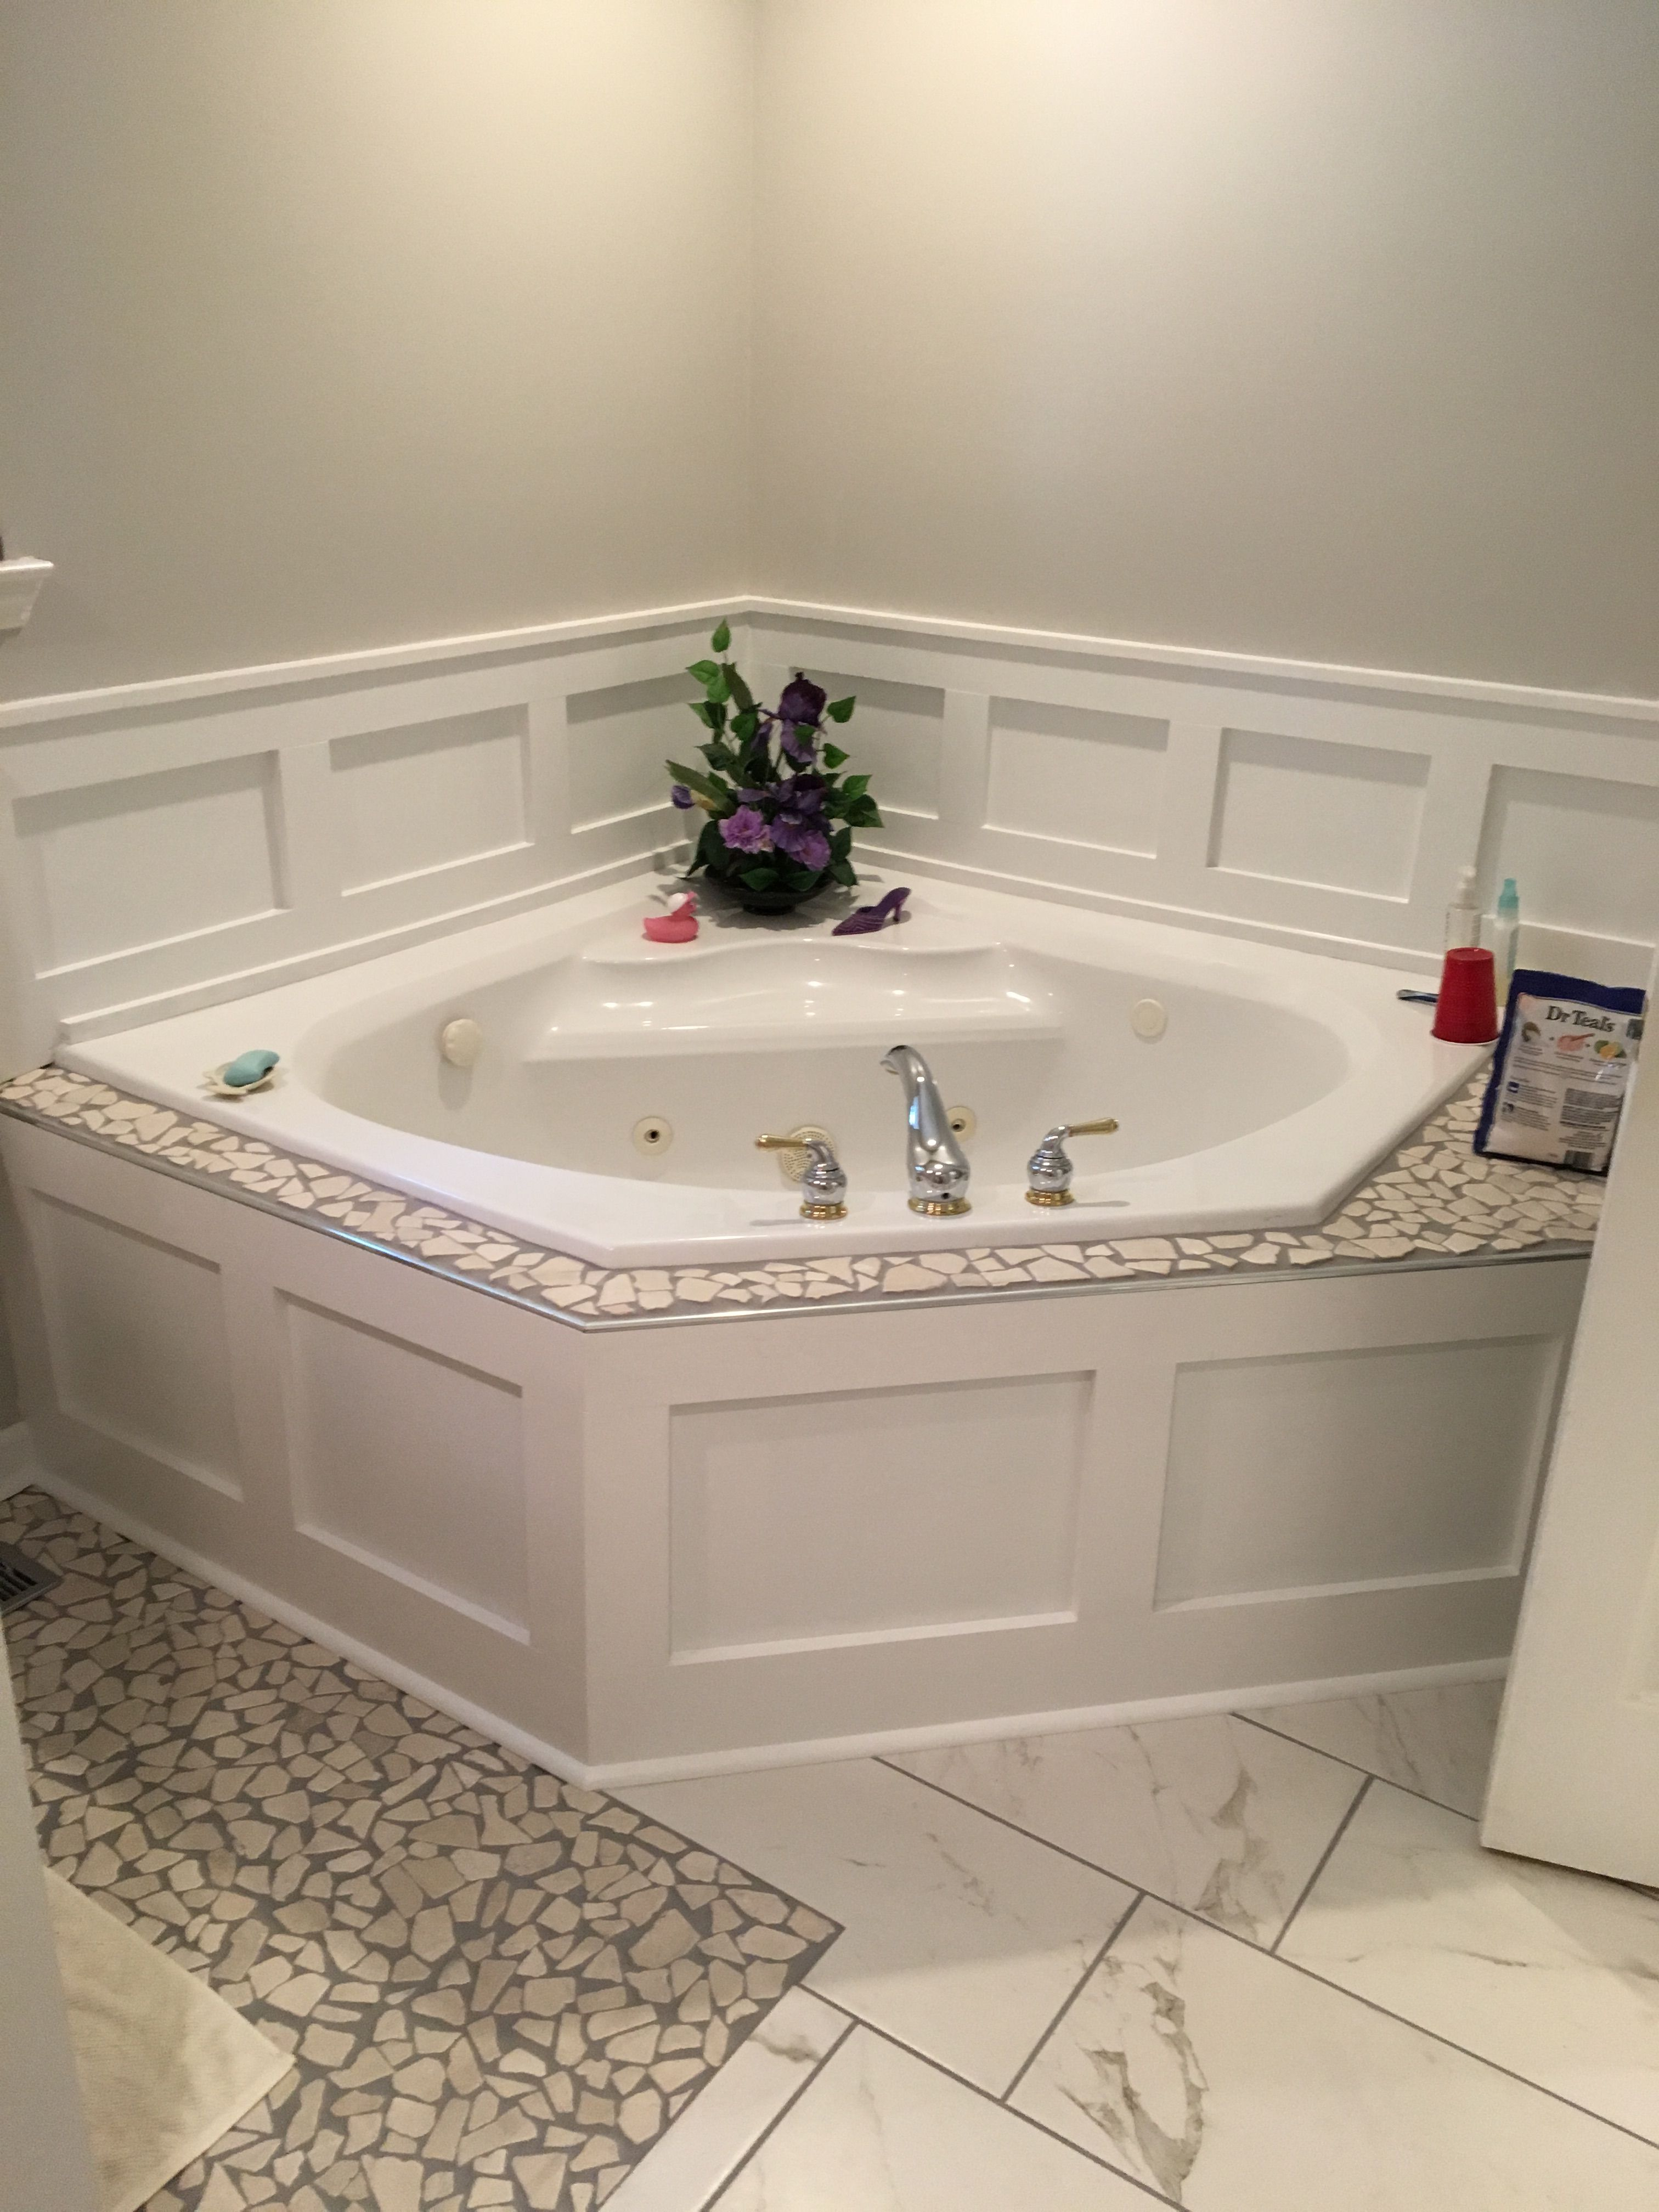 Wainscoting Around Garden Tub Cheap Fix For Broken Outdated Tile Tub Remodel Small Bathroom Garden Tub